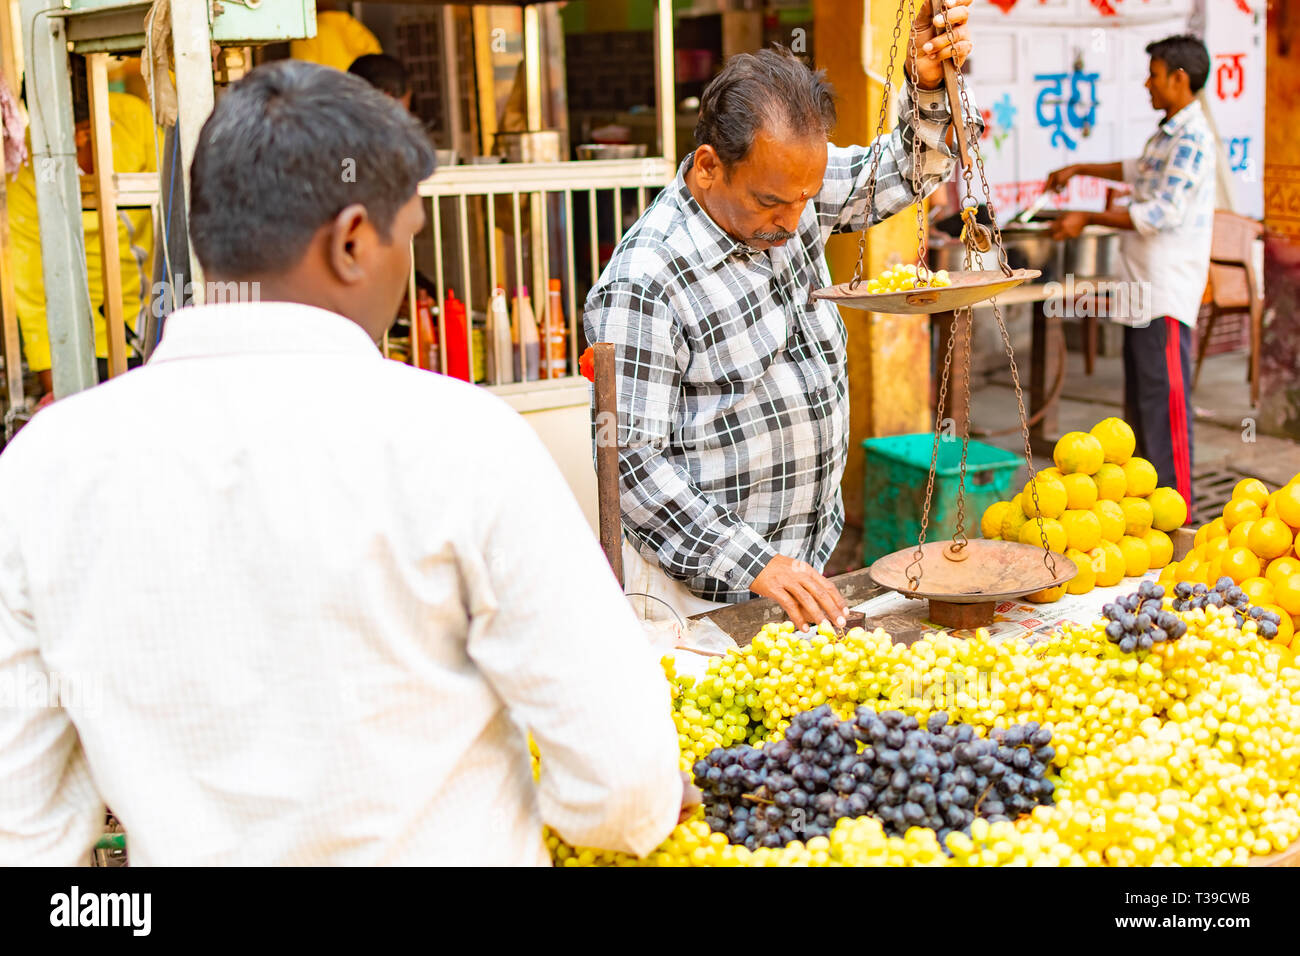 ed7afe0594 India, Varanasi, Mar 10 2019 - Unidentified vendor man sells and weighs  grapes on